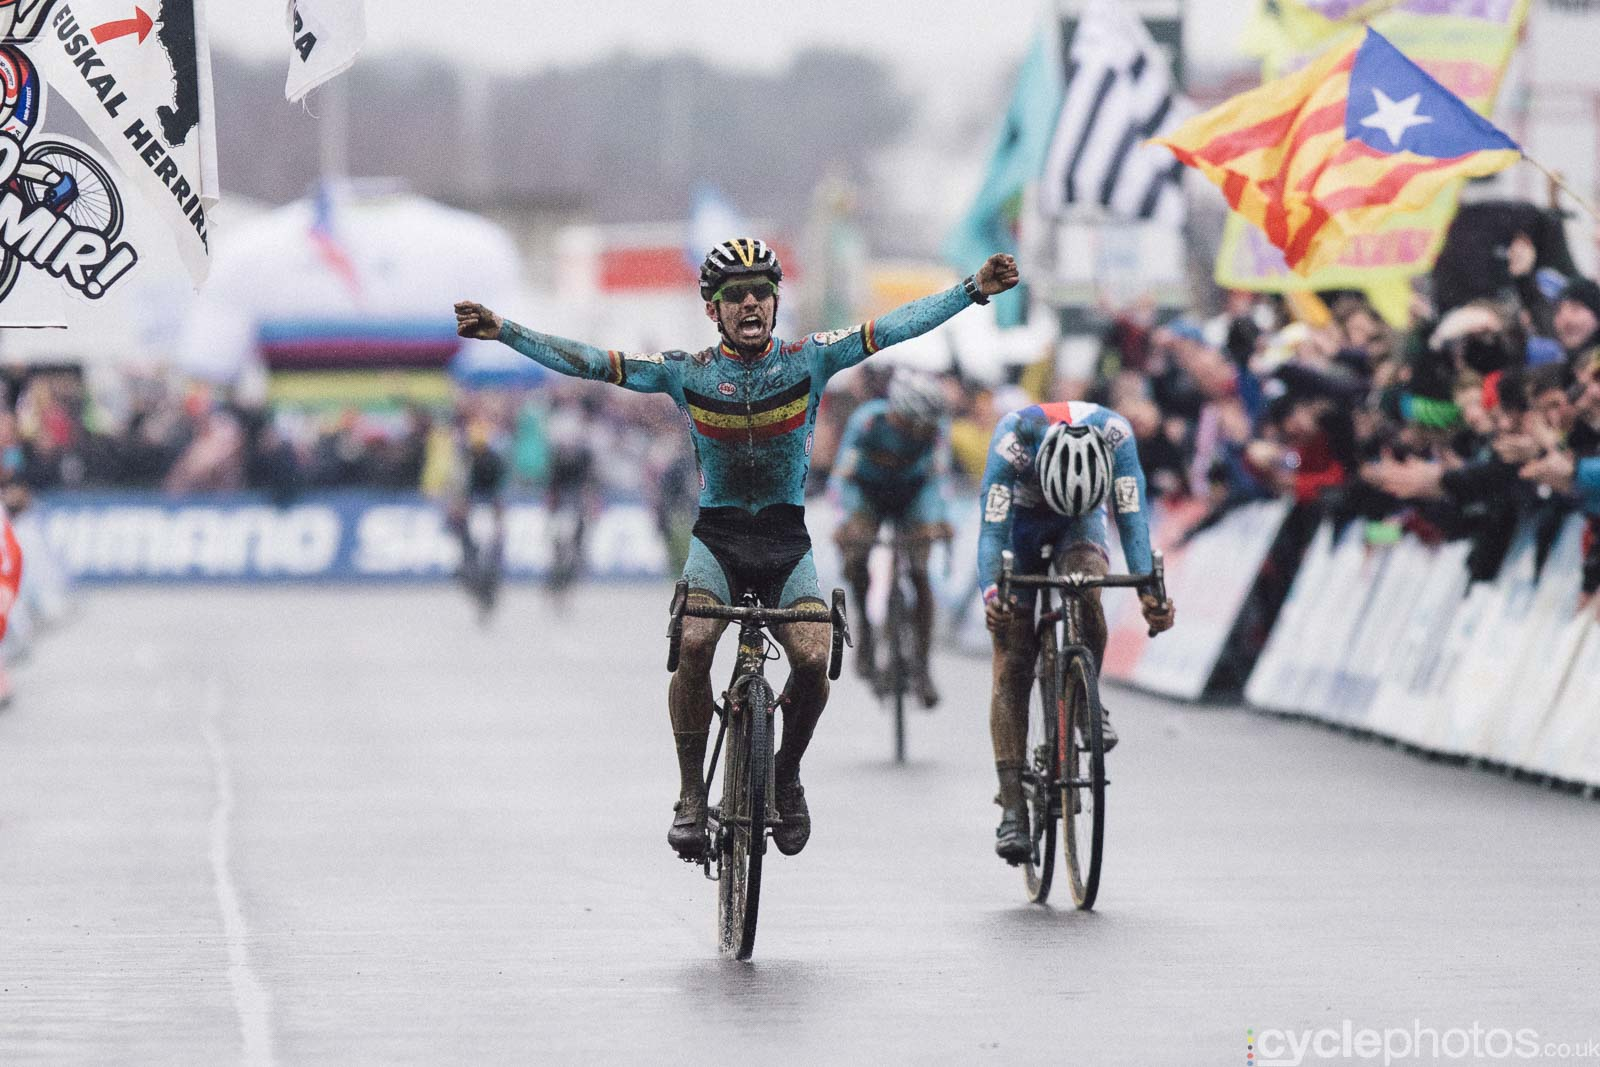 2016-cyclephotos-cyclocross-world-championships-zolder-114429-eli-iserbyt